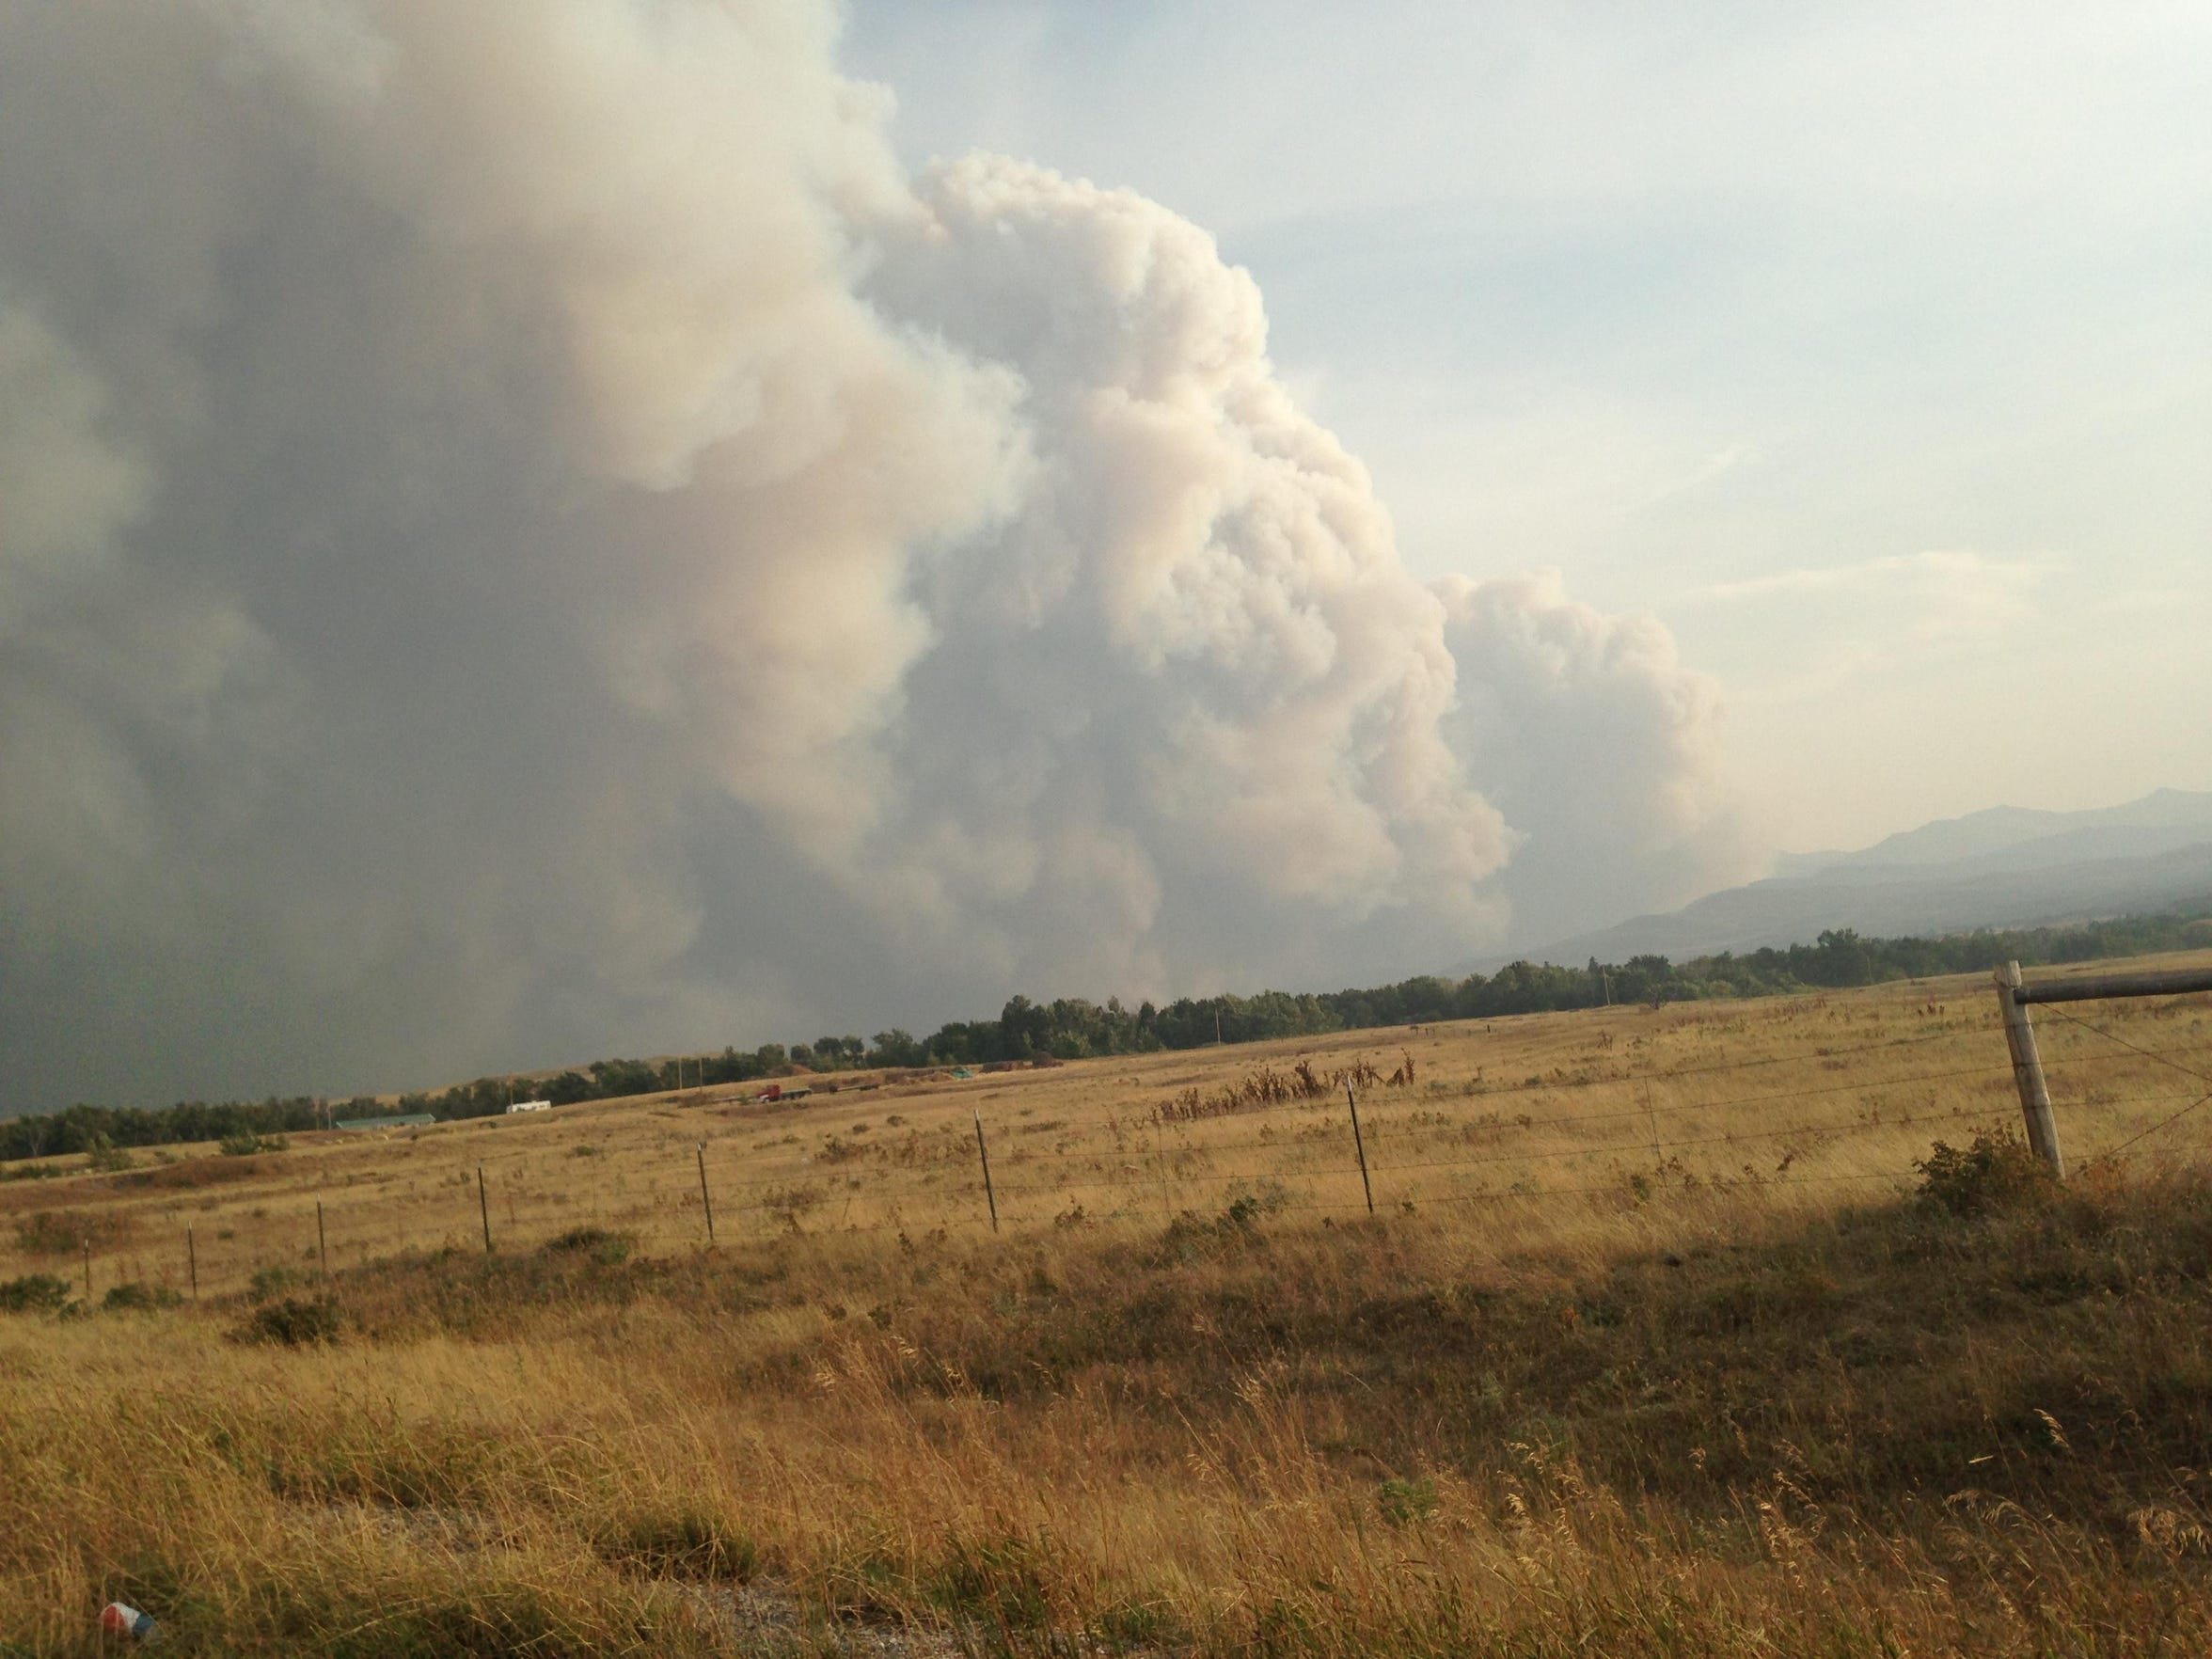 The Spotted Eagle fire, which was sparked by lightning